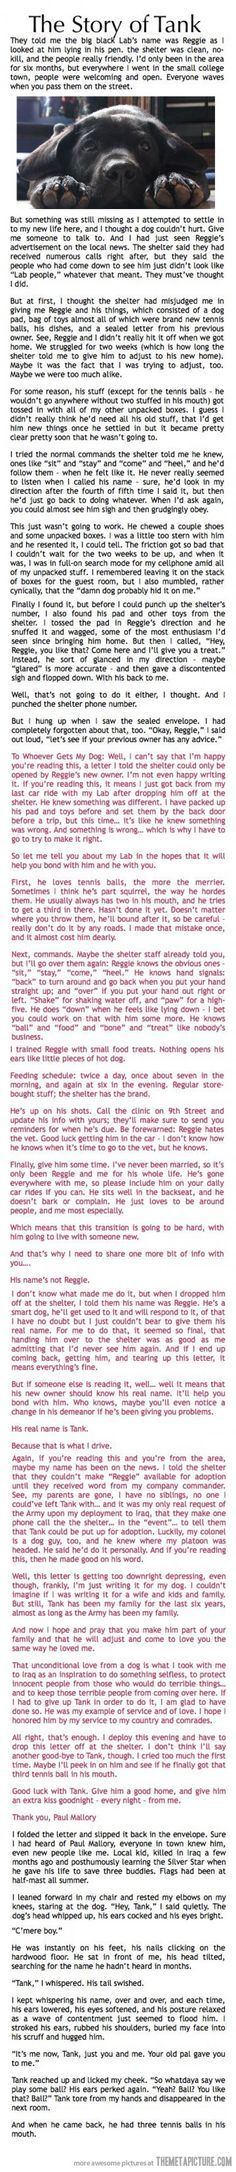 OH MY GOD everyone must read this!